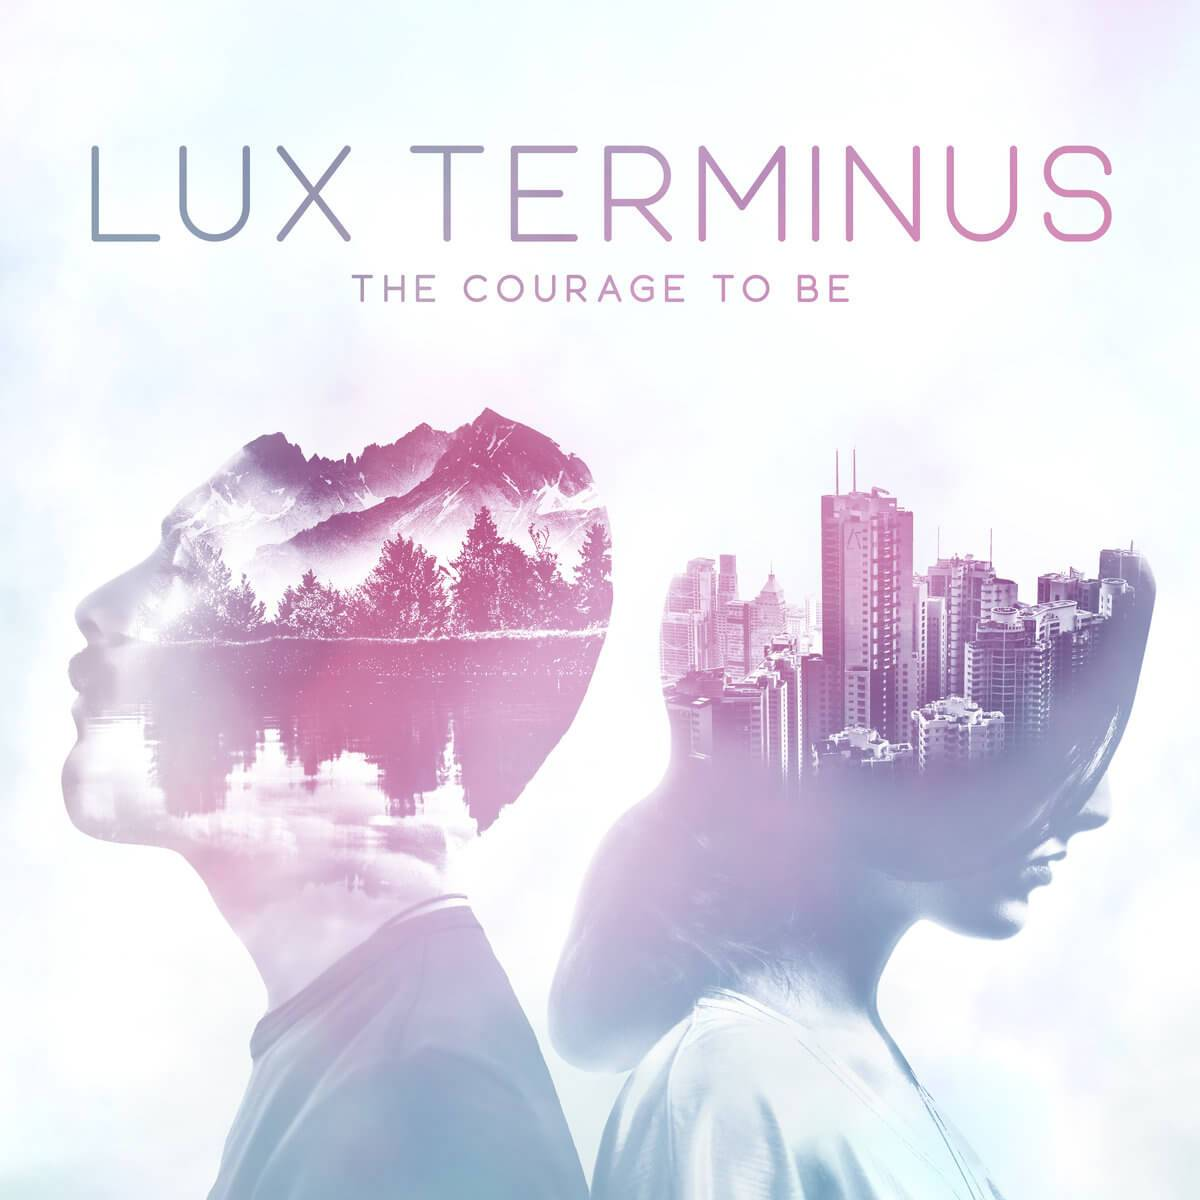 THE COURAGE TO BE : LUX TERMINUS